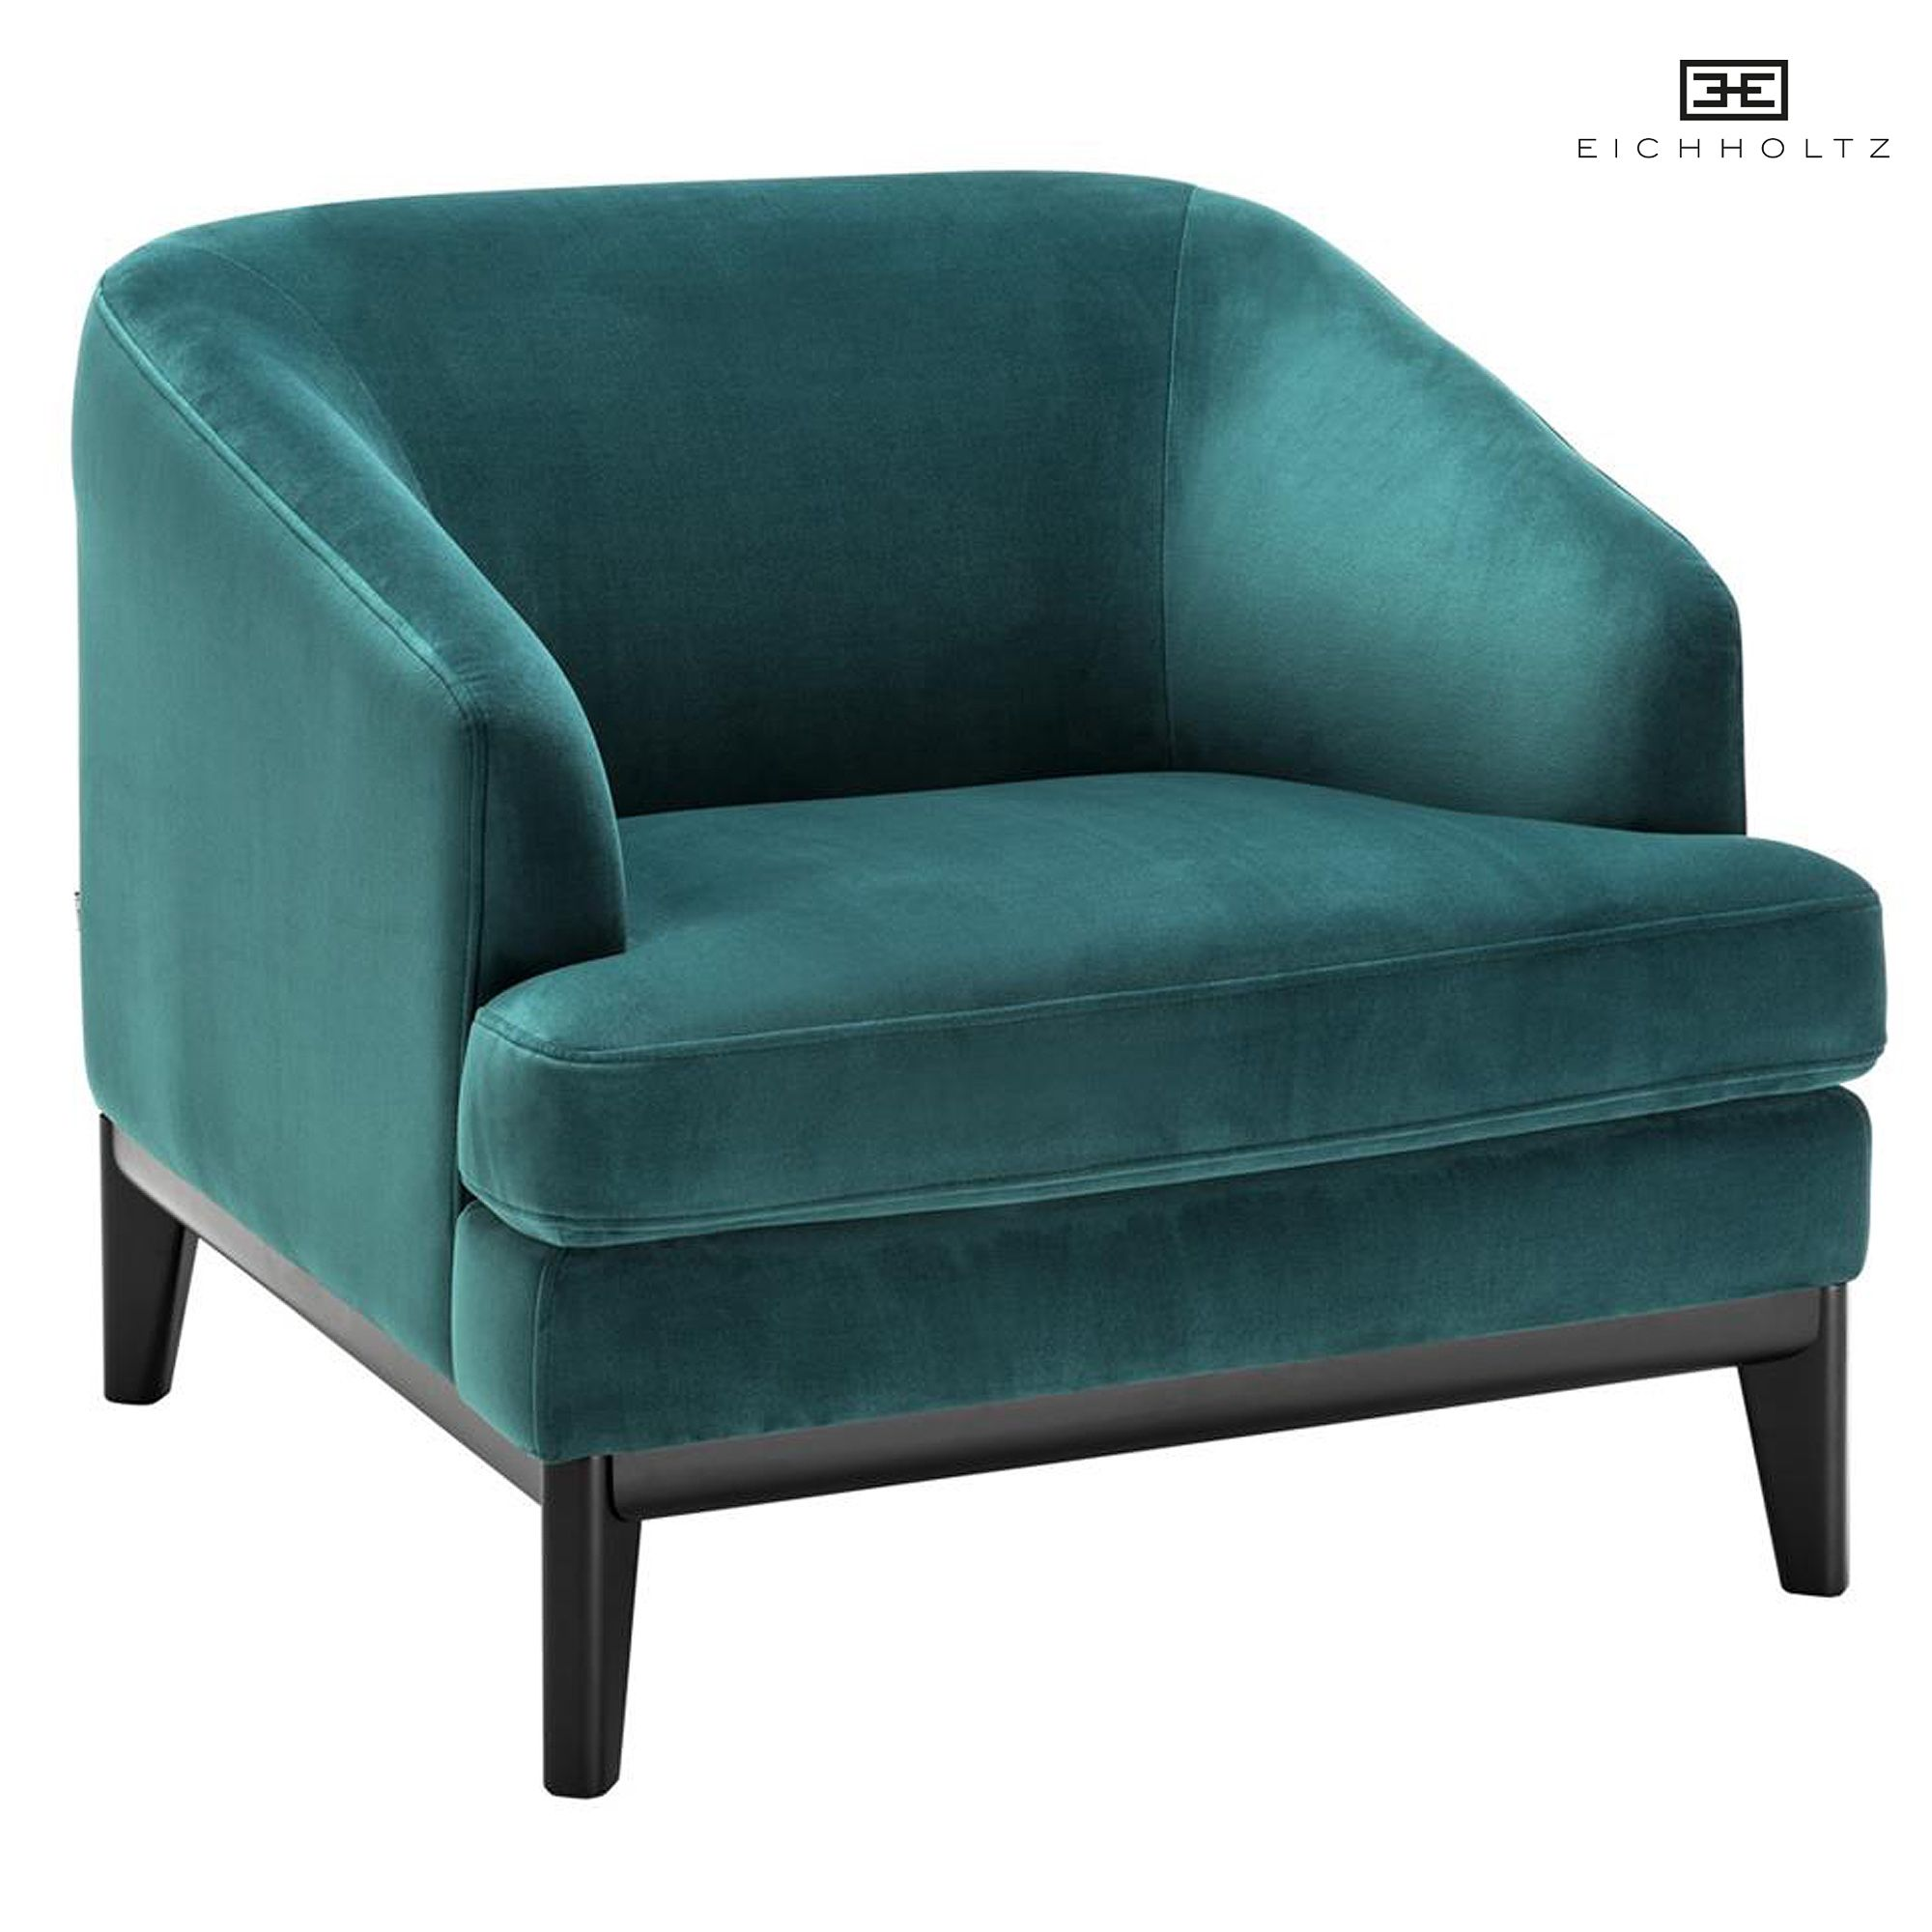 Eetkamer Fauteuil Panama.Eichholtz Chair Monterey Fauteuil Sea Green The